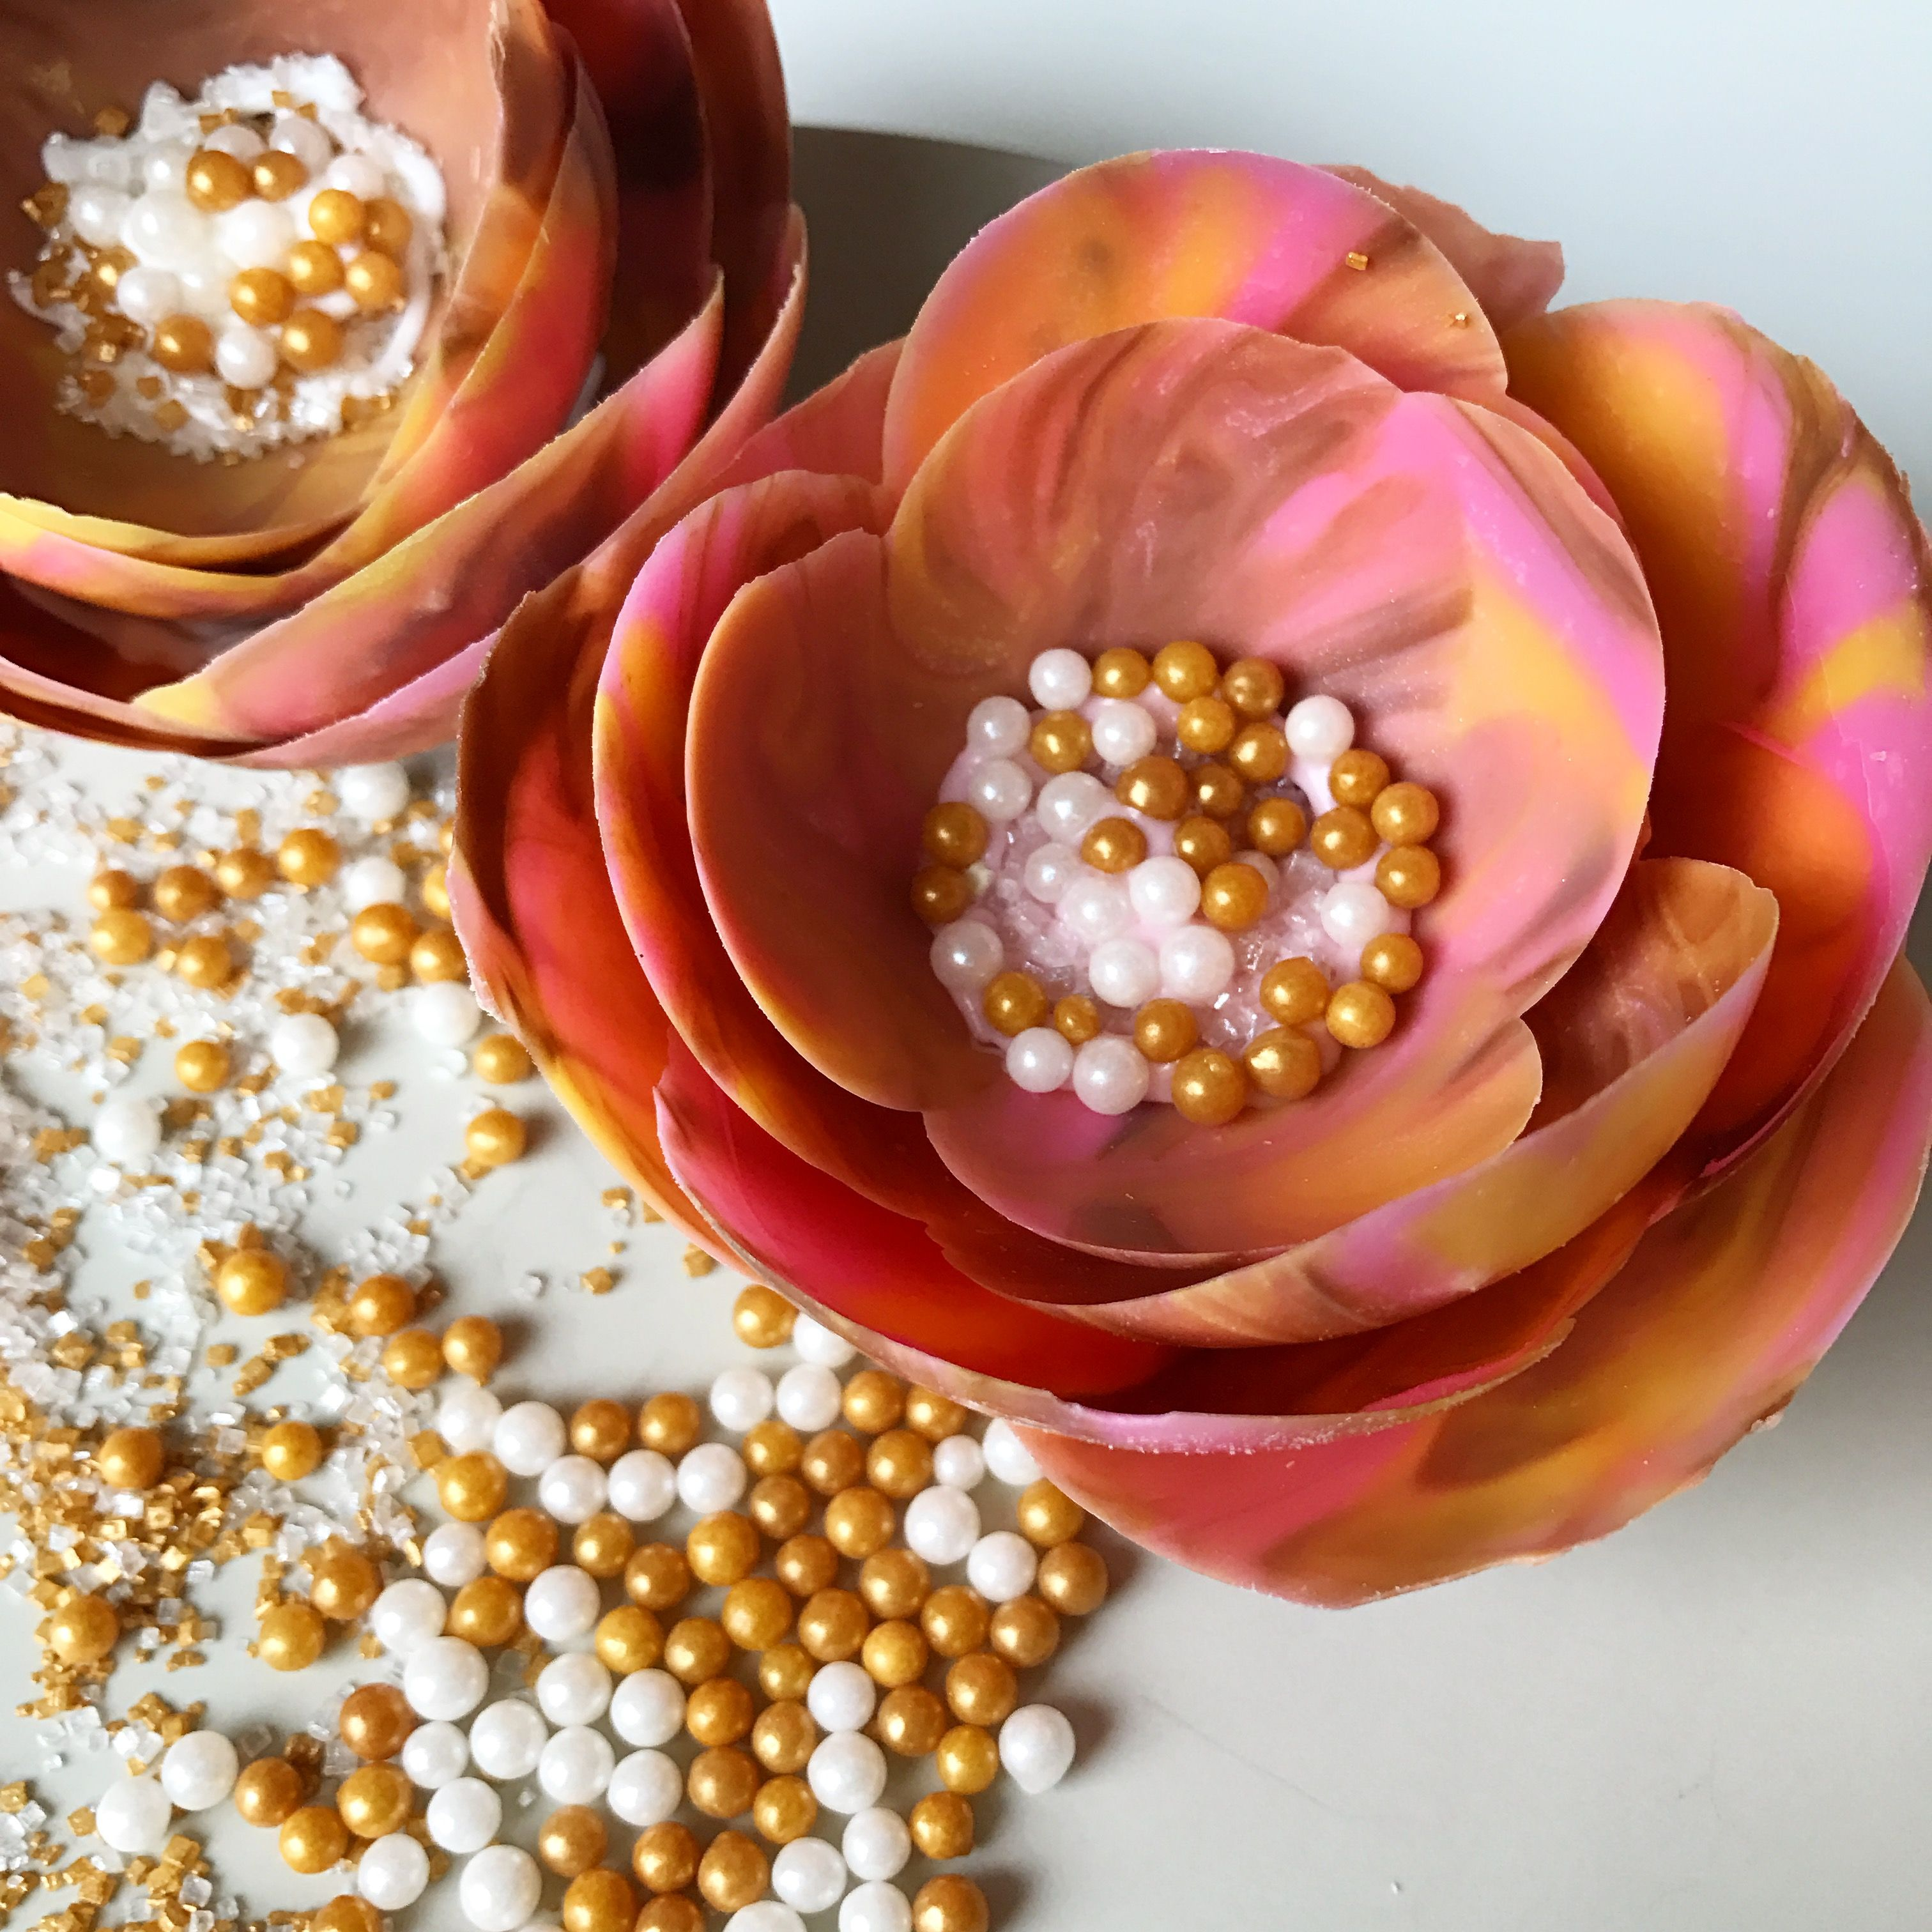 How To Make A Chocolate Flower Using Water Balloons A Modern And